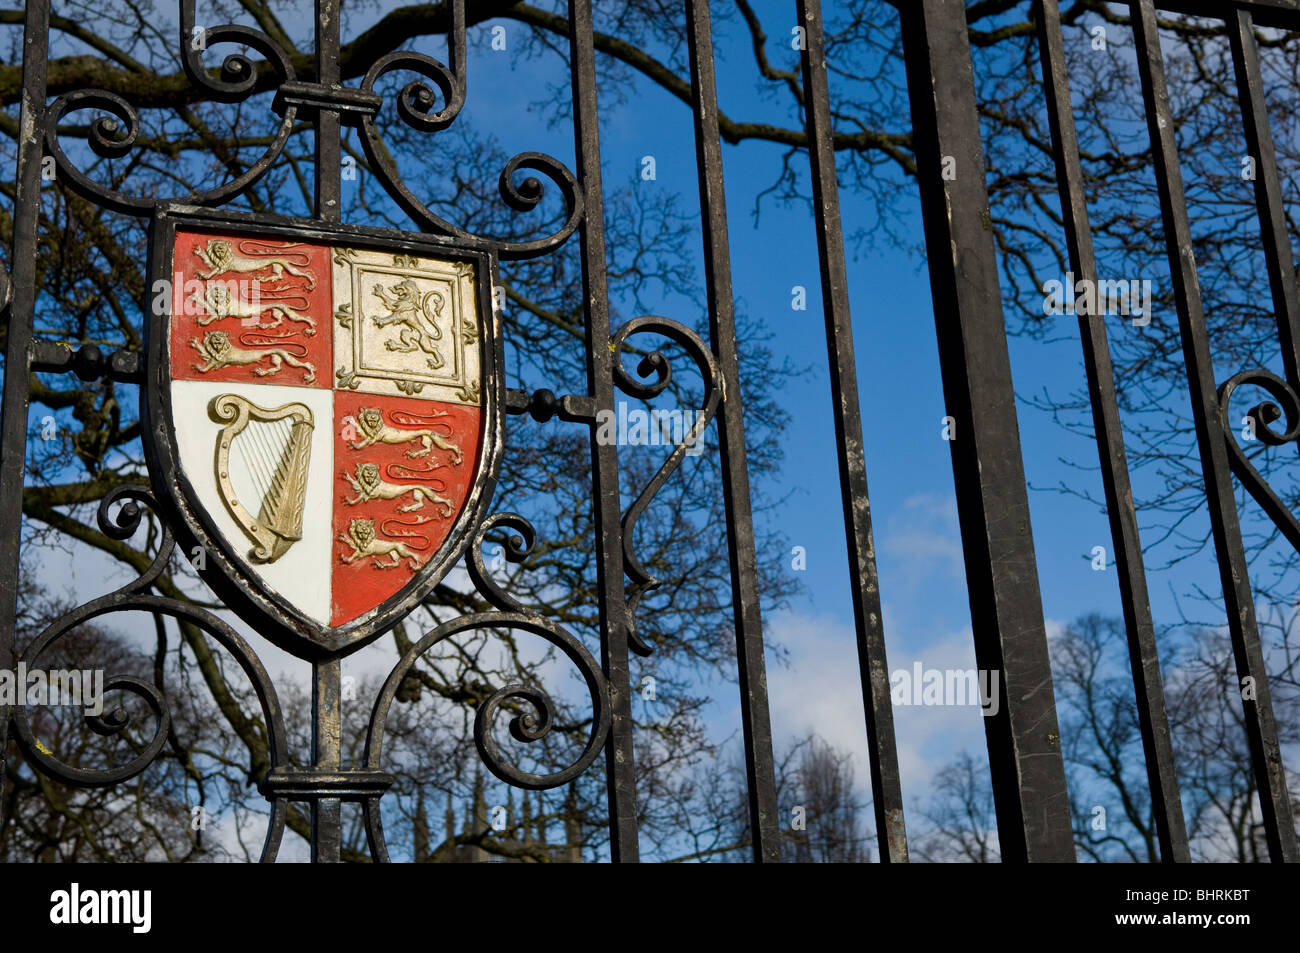 Coat of Arms of Oxford colleges mounted onto wrought iron gates - Stock Image